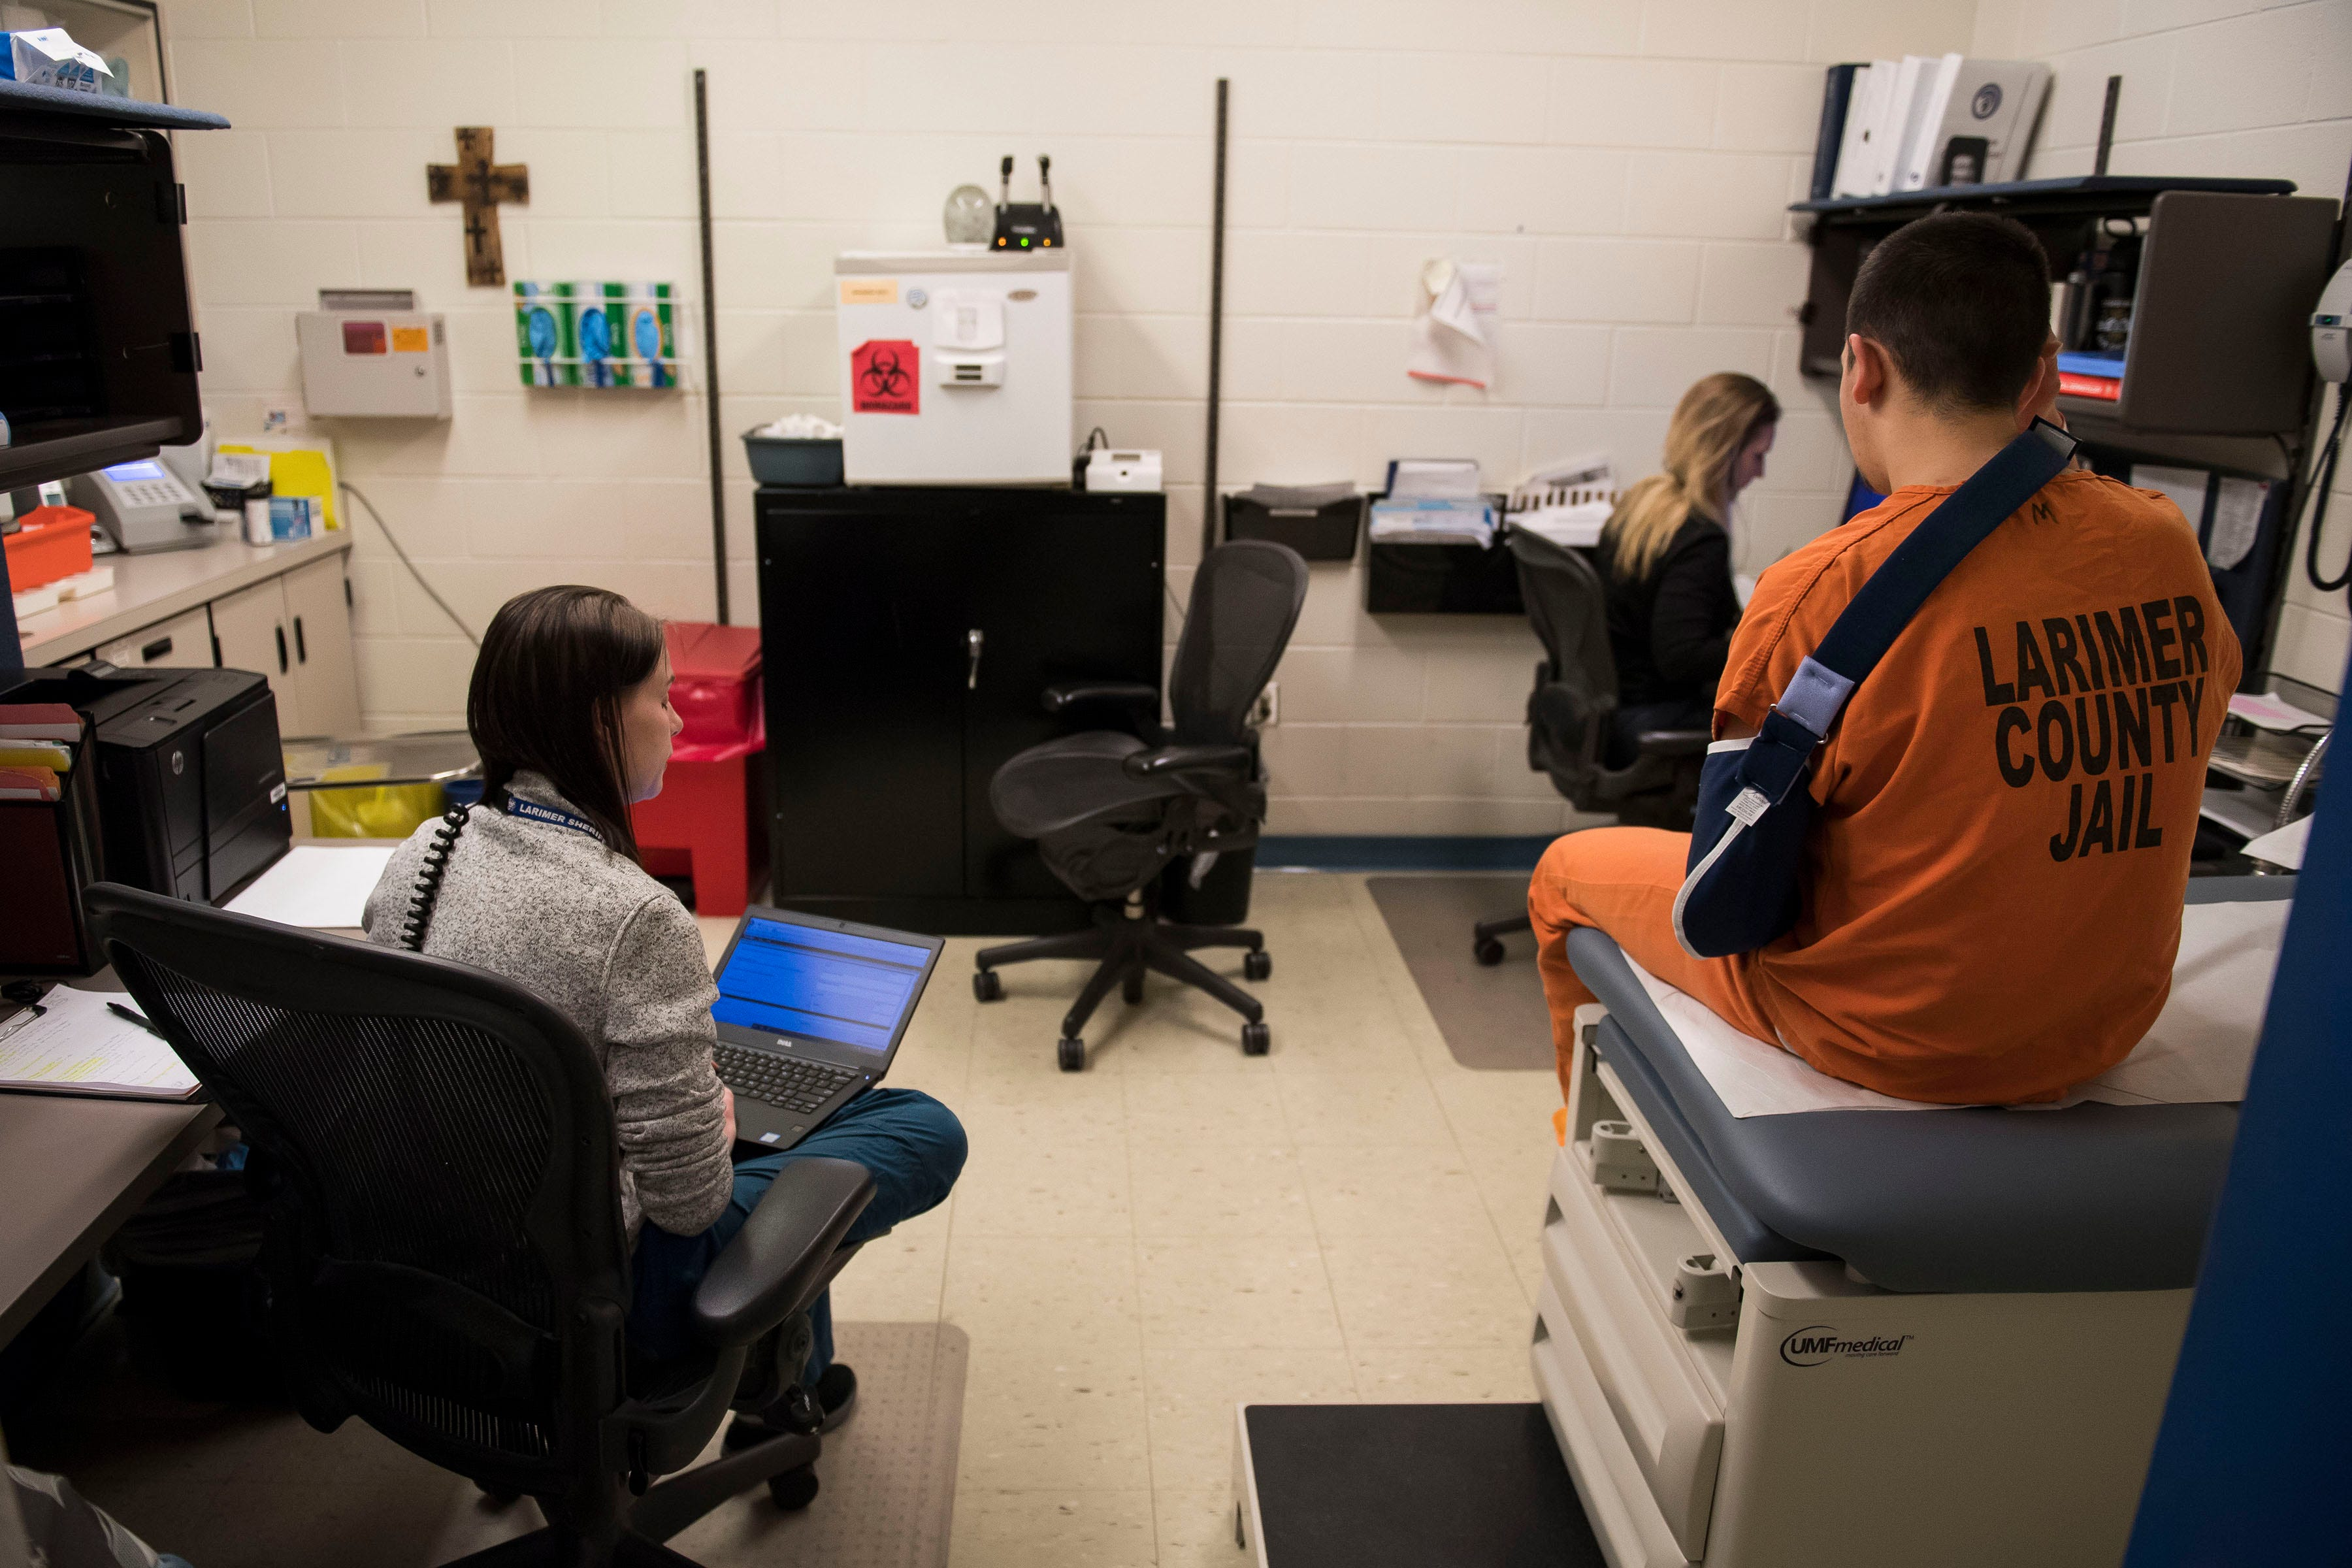 Medical assistant and emergency medical technician Megan Parsons, left, takes notes while she and doctor of nursing practice and certified family nurse practitioner Hannah Holiday talk with an inmate at the Larimer County Jail on Wednesday, April 3, 2019, in Fort Collins, Colo.